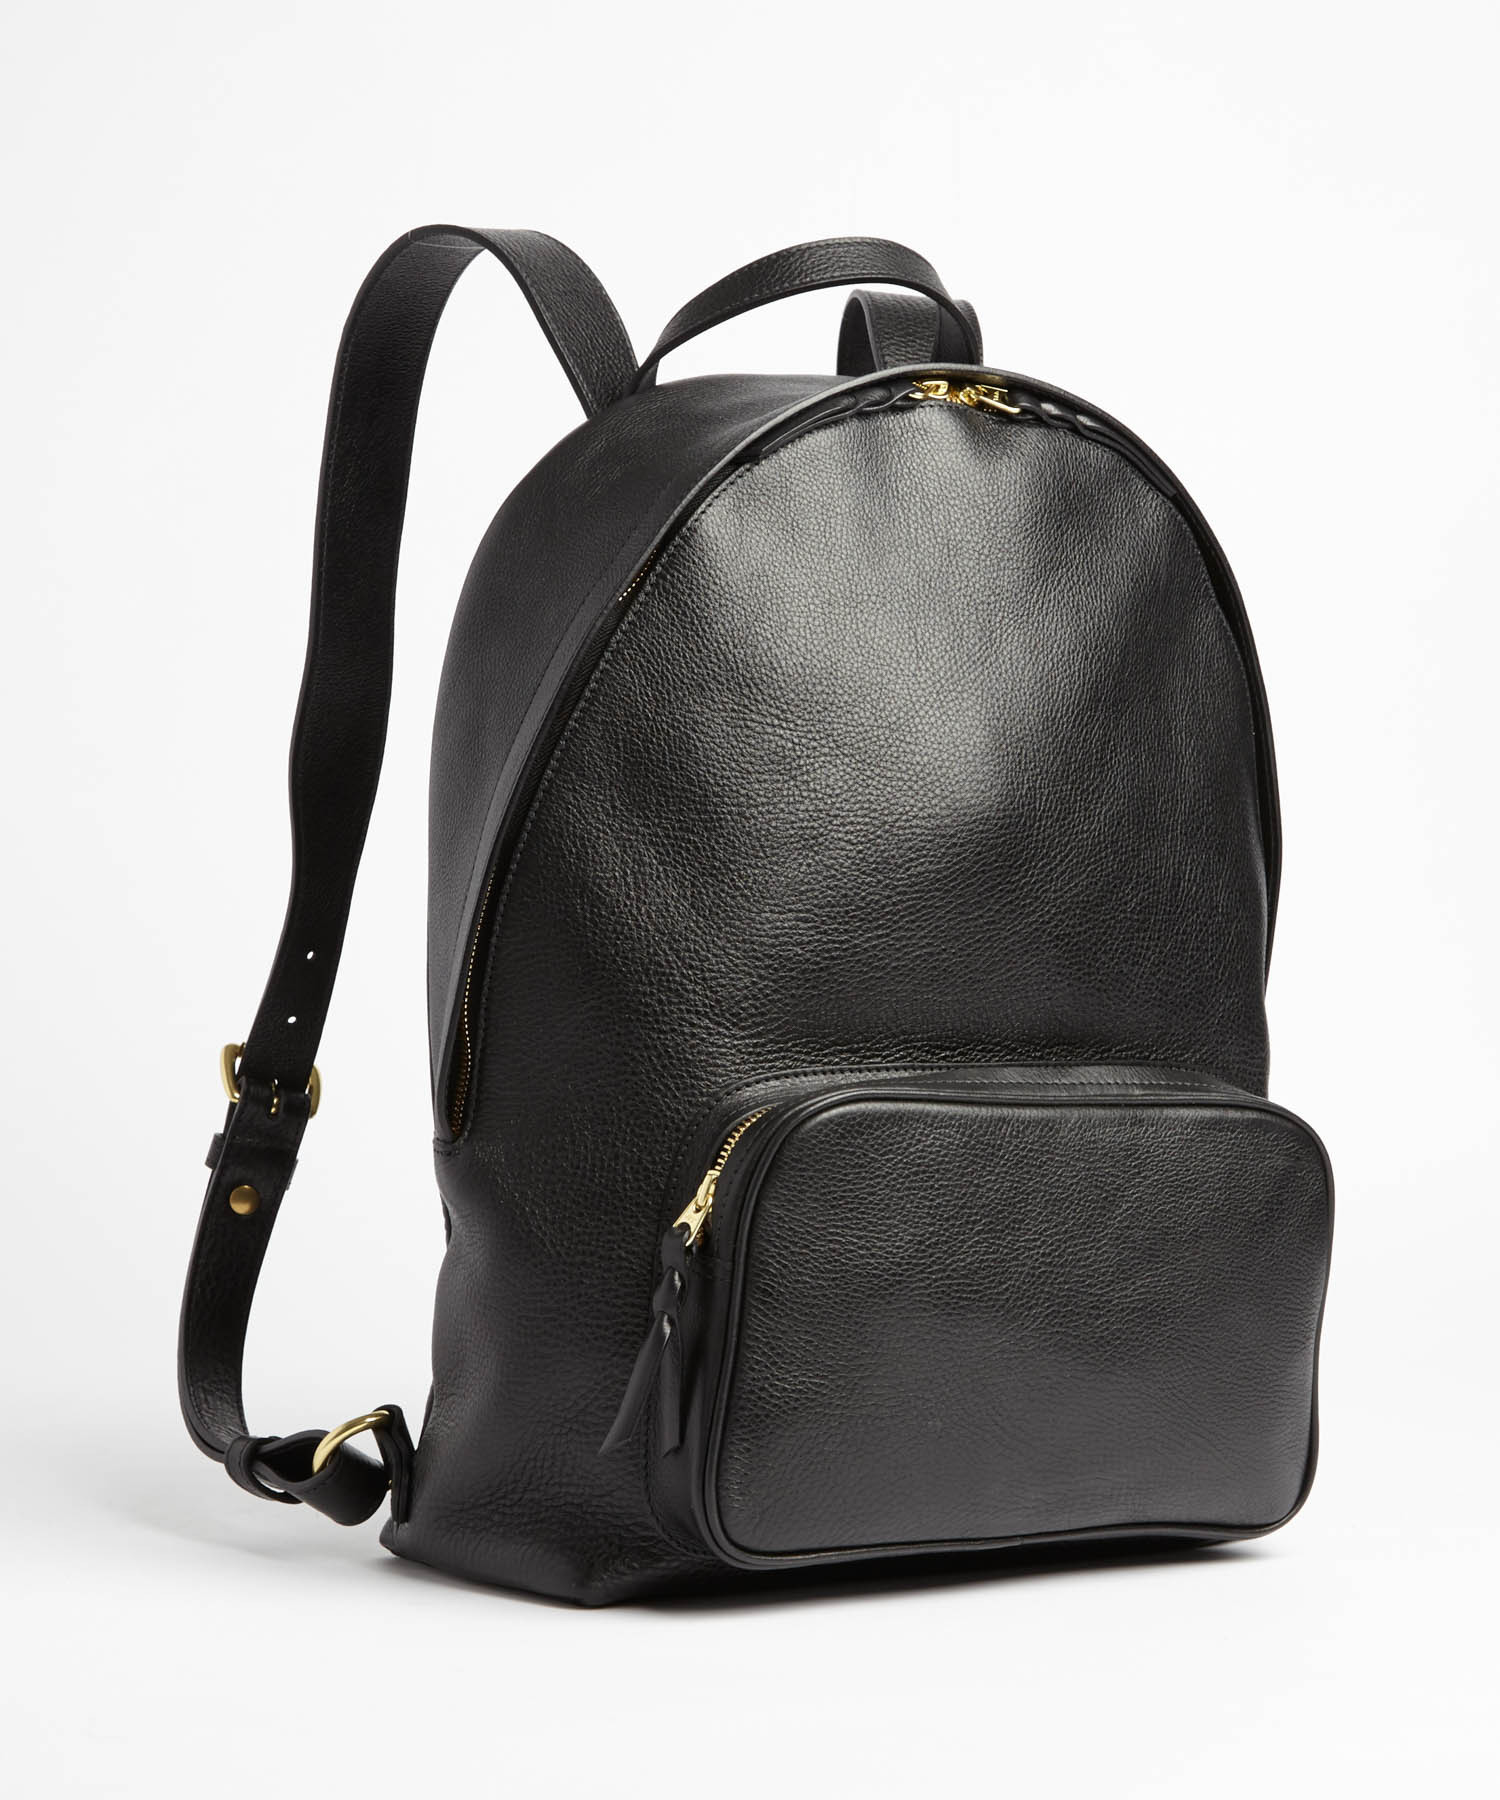 Free shipping BOTH ways on black leather backpack, from our vast selection of styles. Fast delivery, and 24/7/ real-person service with a smile. Click or call